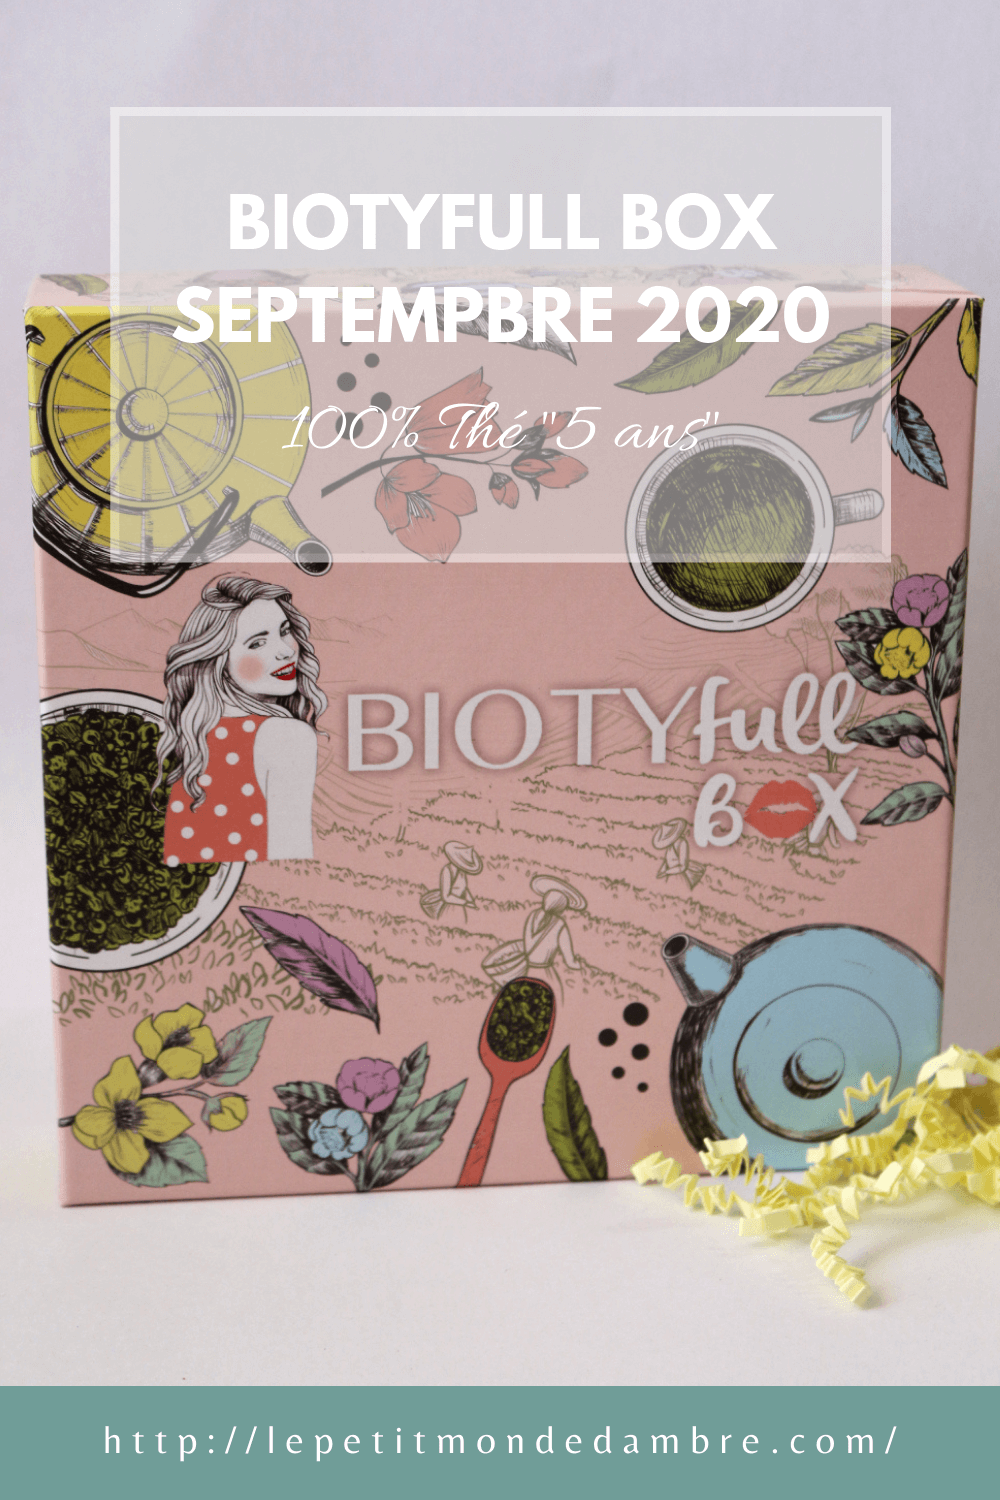 Epingle pinterest article Biotyfull box septembre 2020 100% thé